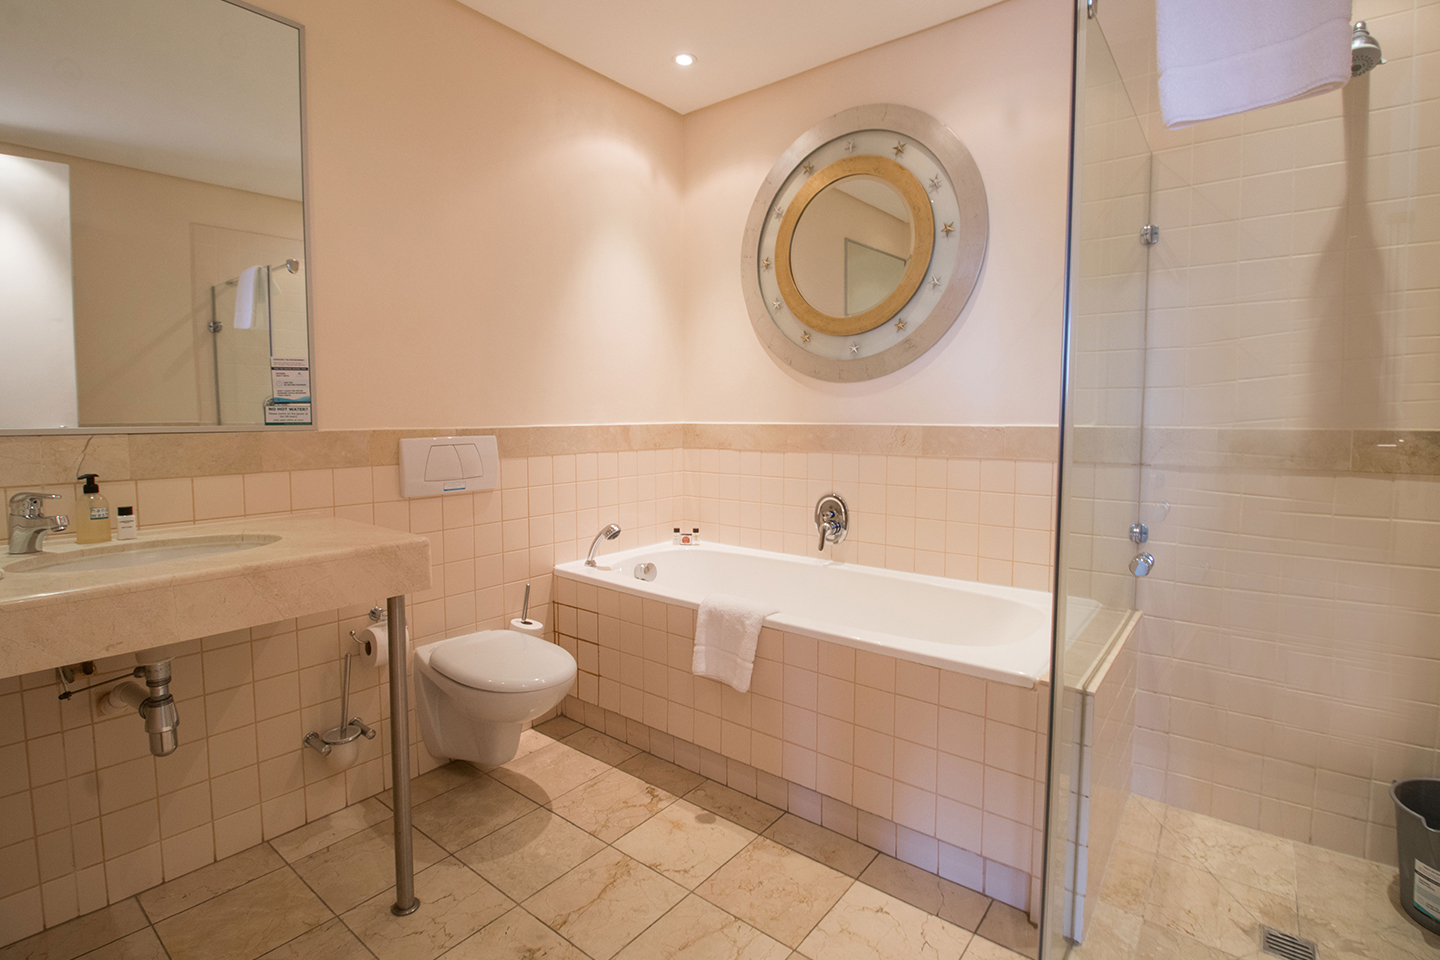 Bath at Waterfront Village, Waterfront, Cape Town - Citybase Apartments